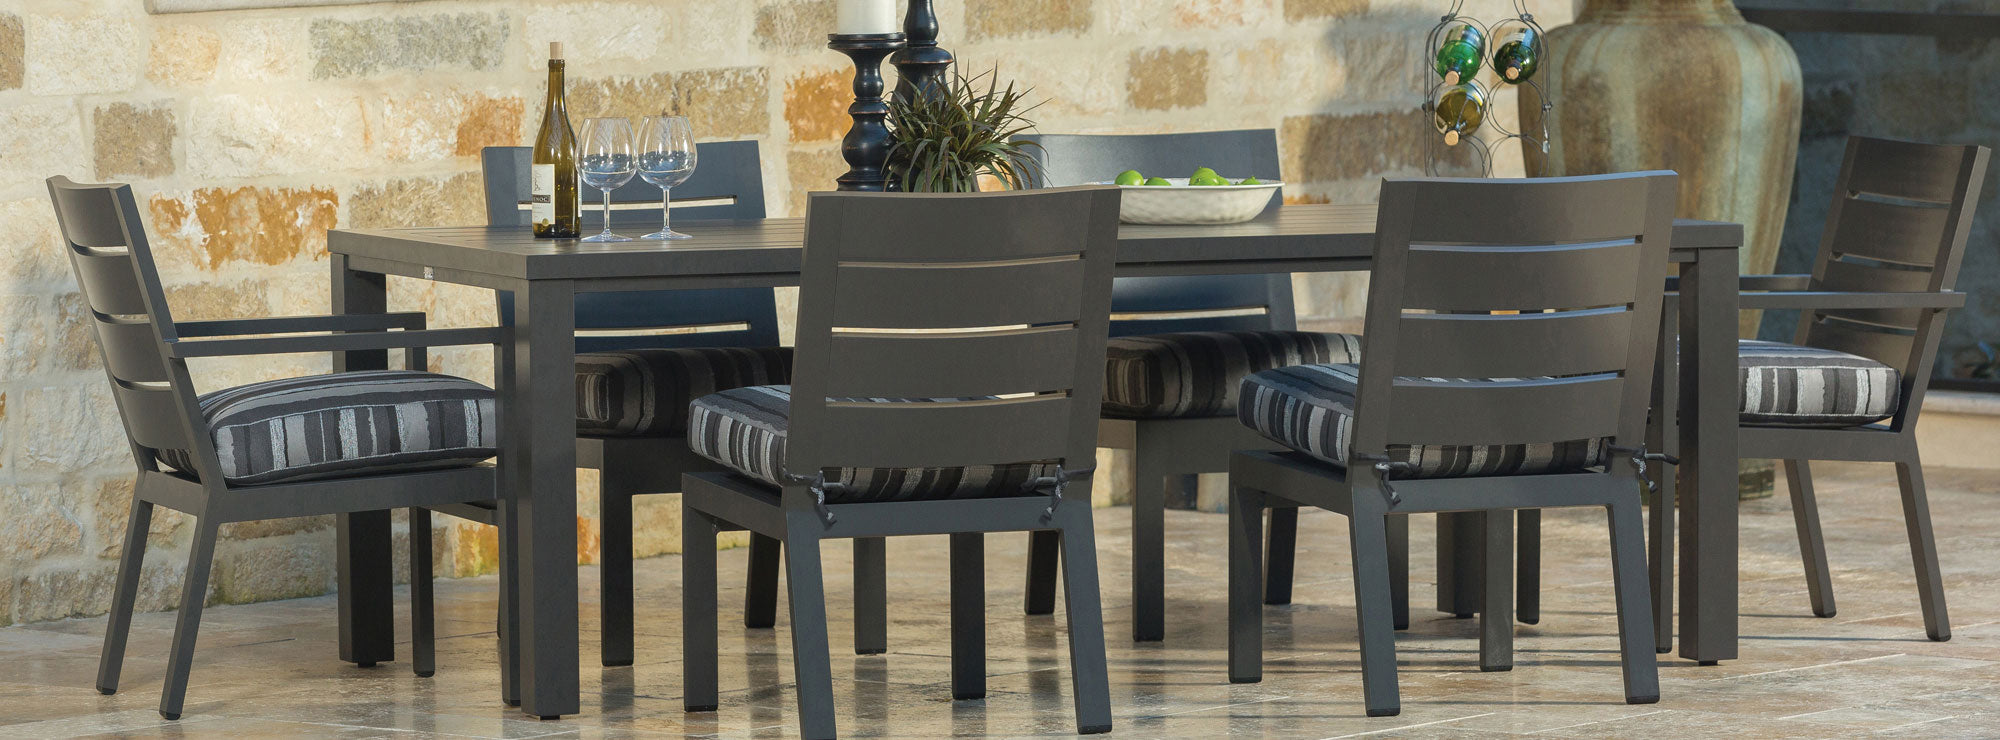 Palermo Aluminum Patio Dining Set by Ebel